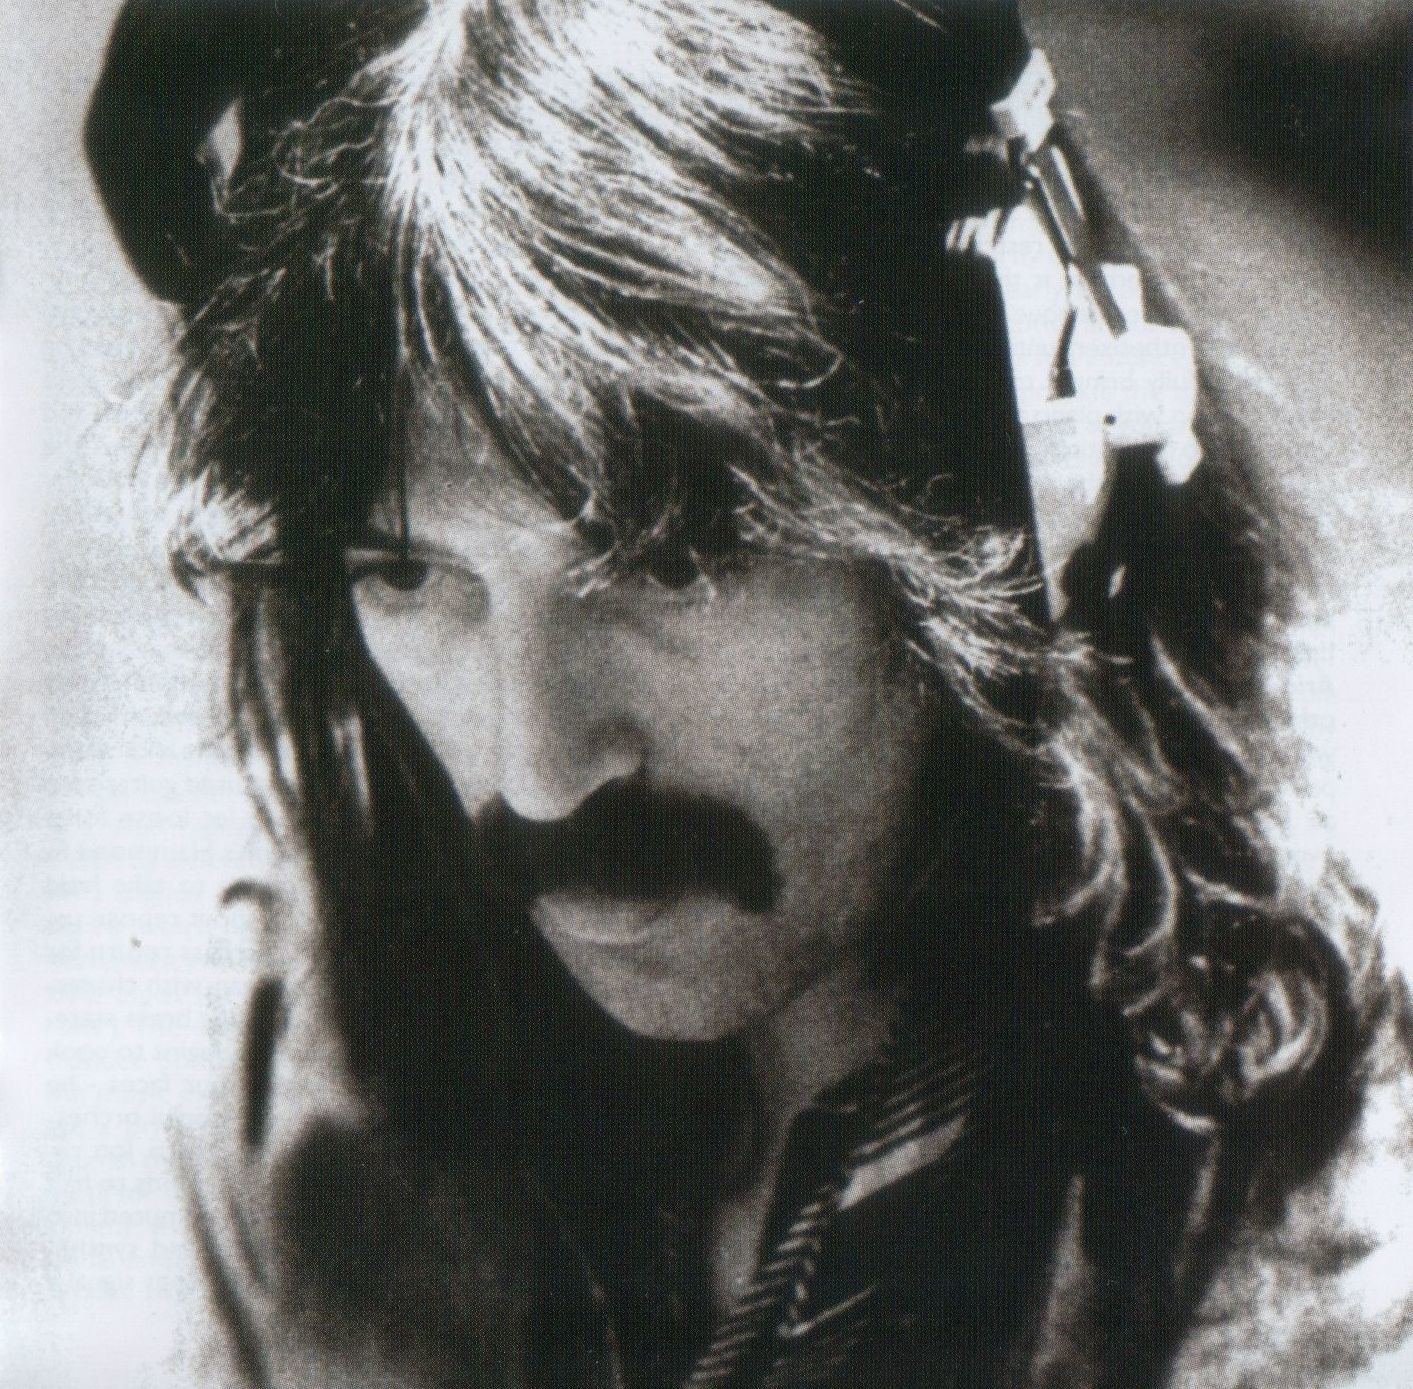 Jon Lord, keyboardist and co-founder of Deep Purple